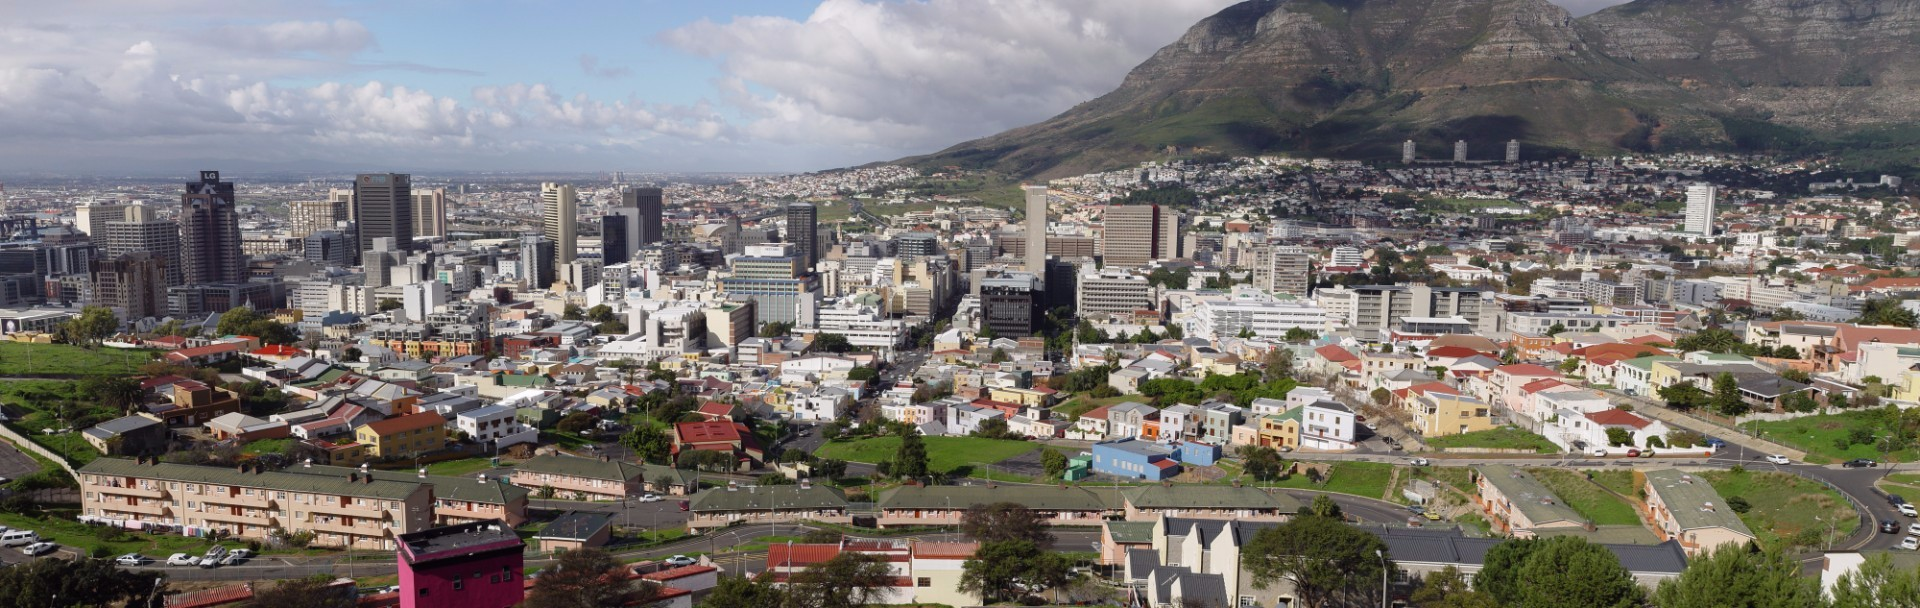 Cape Town Population in 2017